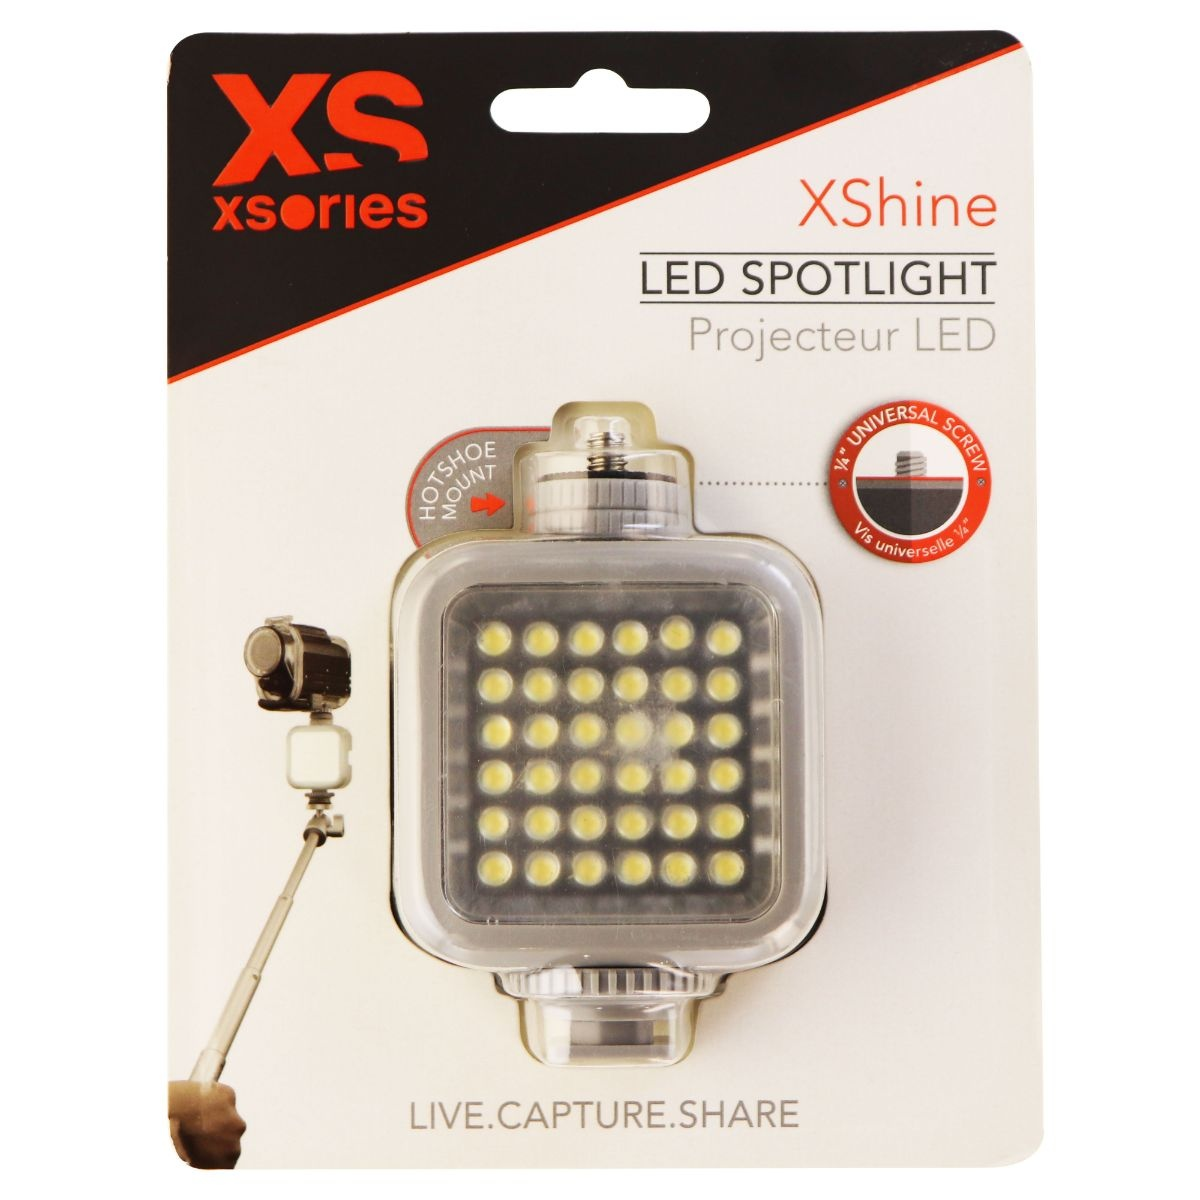 XSories XShine LED Spotlight with 1/4in Mounts and Rechargeable Battery - Gray